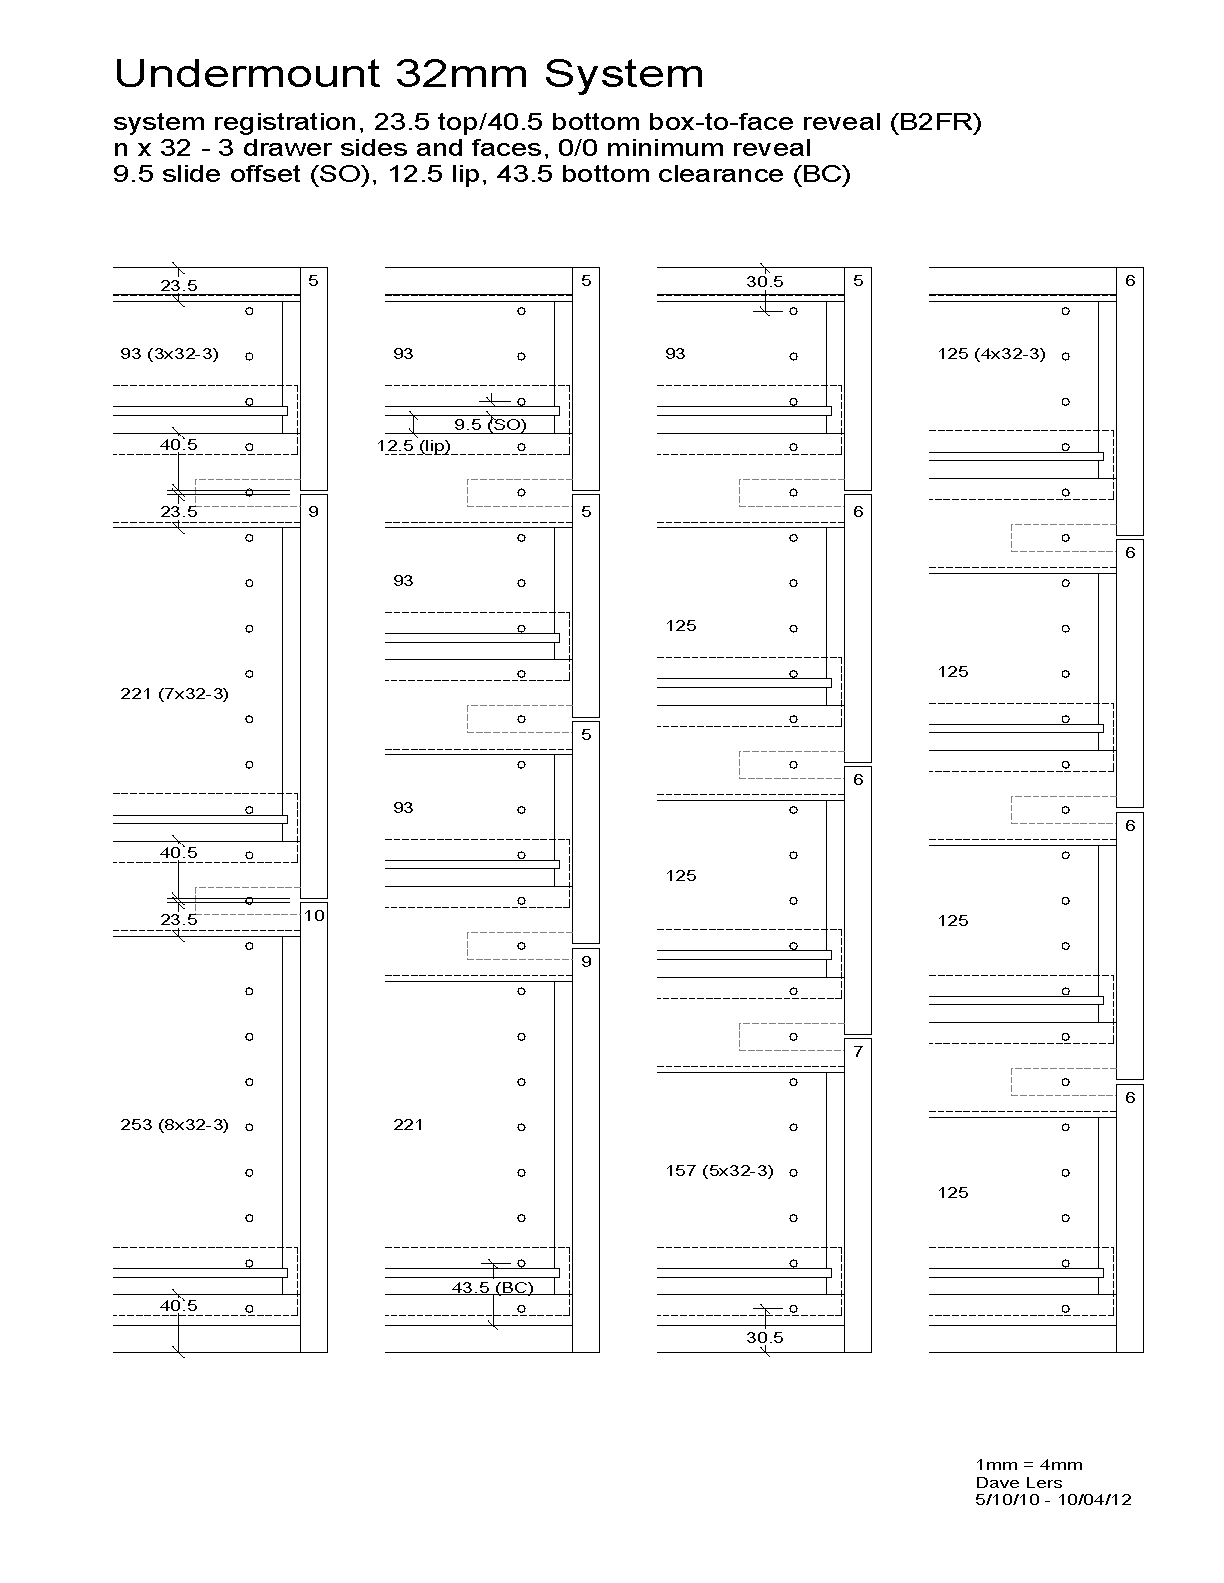 32mm Cabinetmaking : Drawers : Full Overlay Bottom Clearance